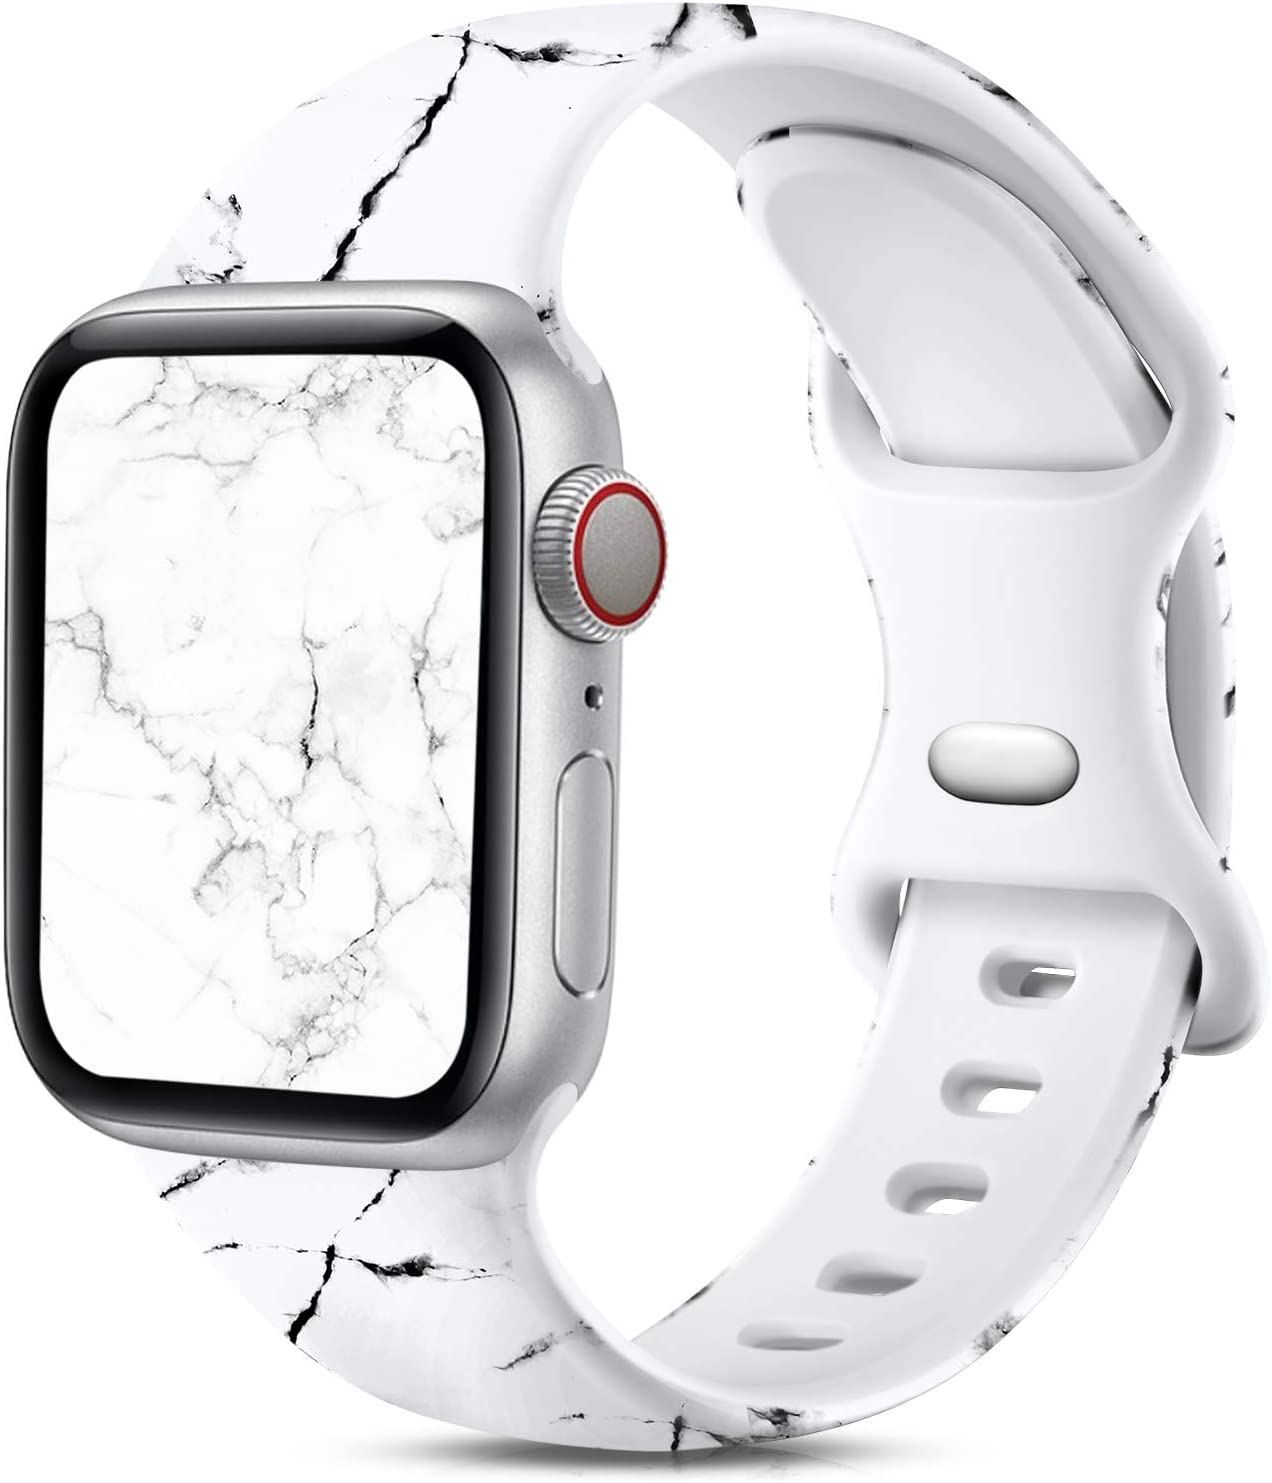 Ouwegaga Compatible with Apple Watch Band 44mm 42mm iWatch SE Series 6 5 4 3 2 1 Bands for Women Men,Fadeless Soft Silicone Floral Printed Pattern Wristbands Straps White Marble,S/M